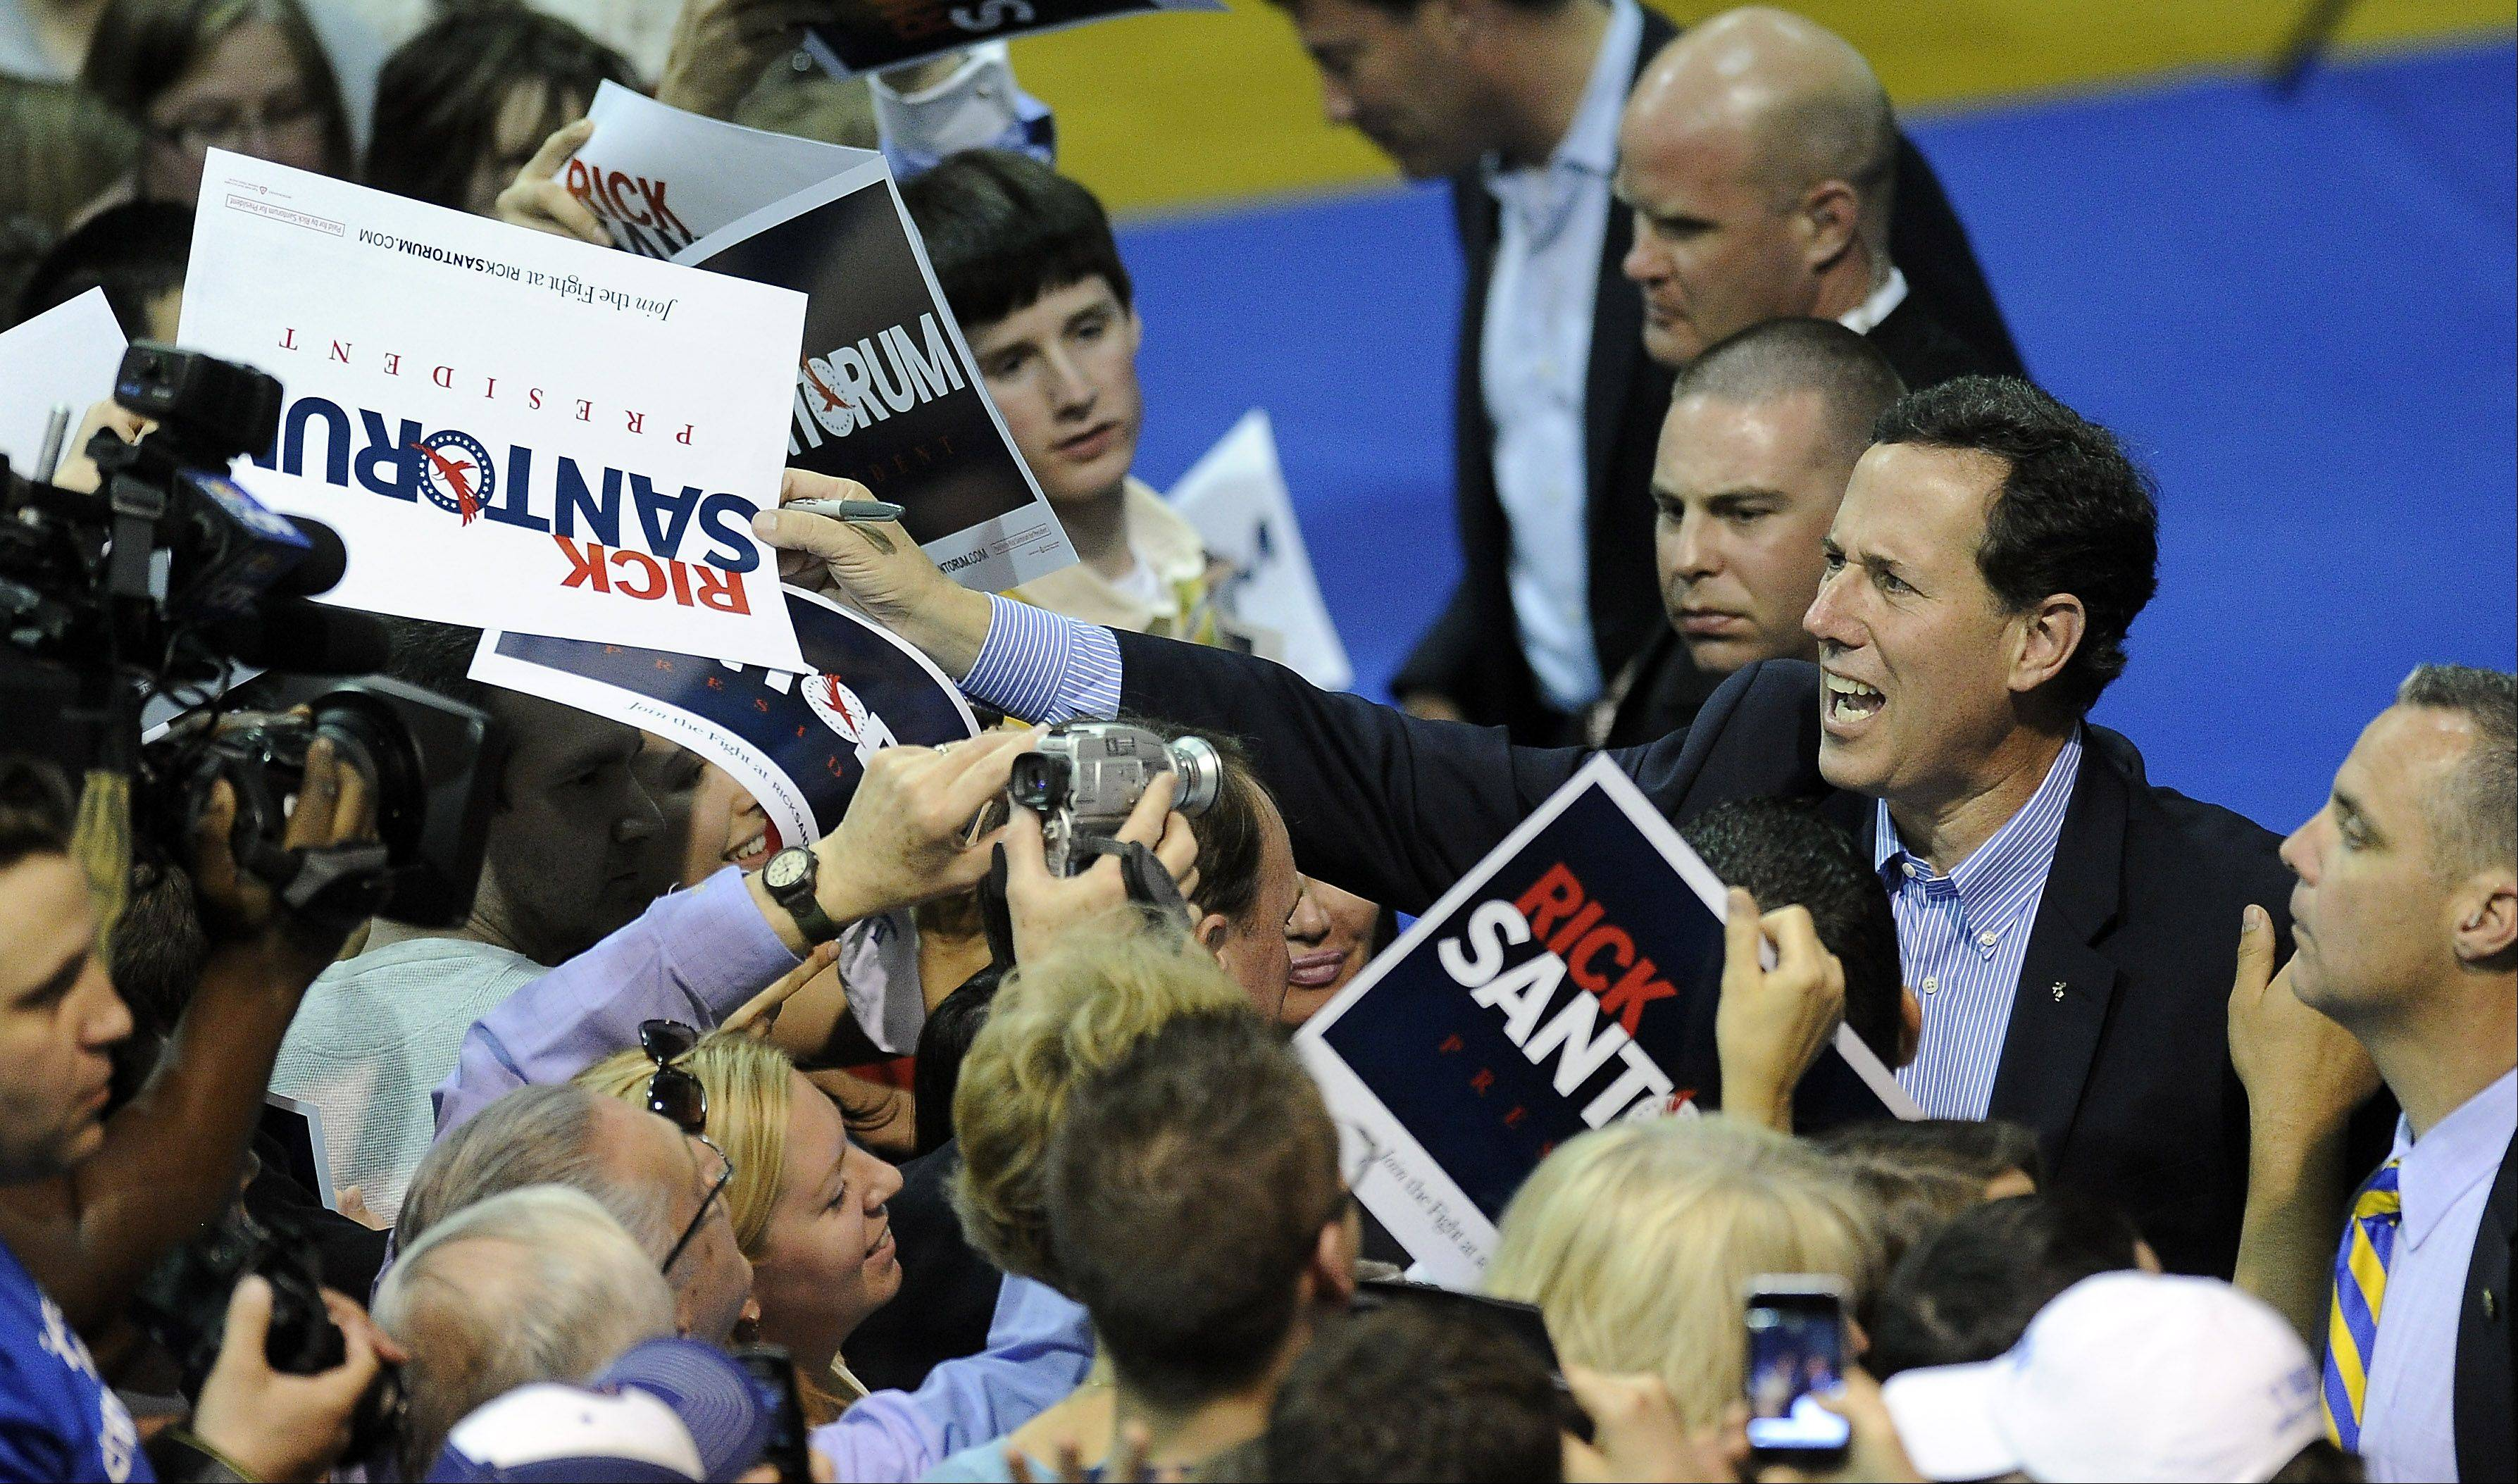 Rick Santorum signs autographs after his campaign rally at Christian Liberty Academy in Arlington Heights on Friday.